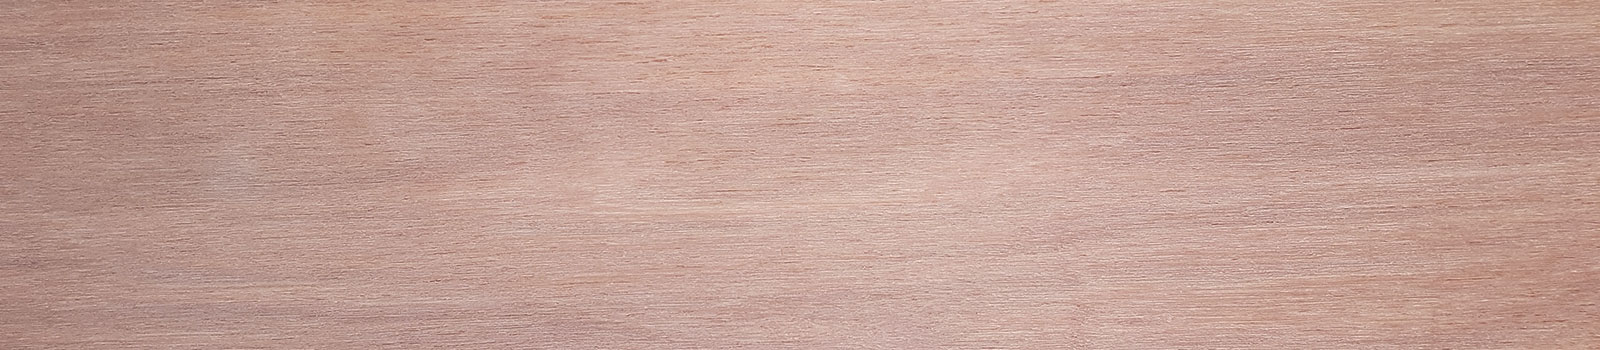 Exterior Plywood 6mm ~ Sheet material vetraland selective timber south east